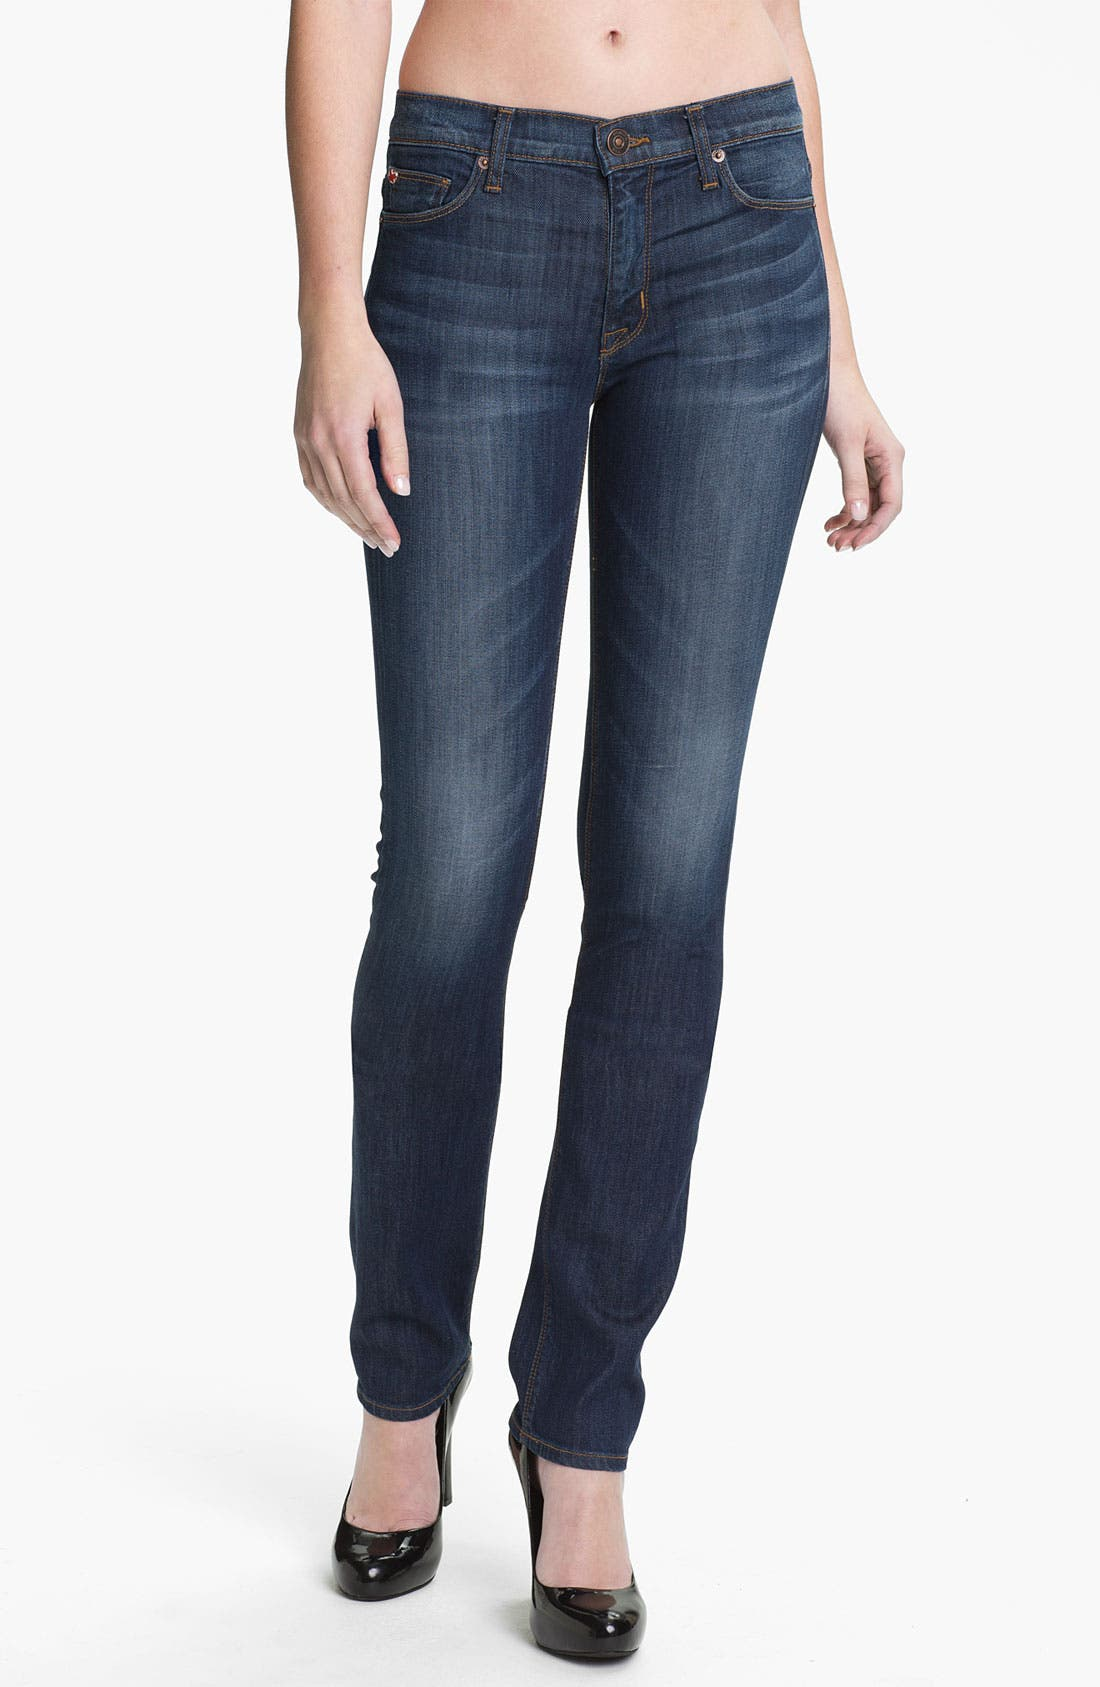 Alternate Image 1 Selected - Hudson Jeans 'Tilda' Straight Leg Stretch Jeans (Bennett)